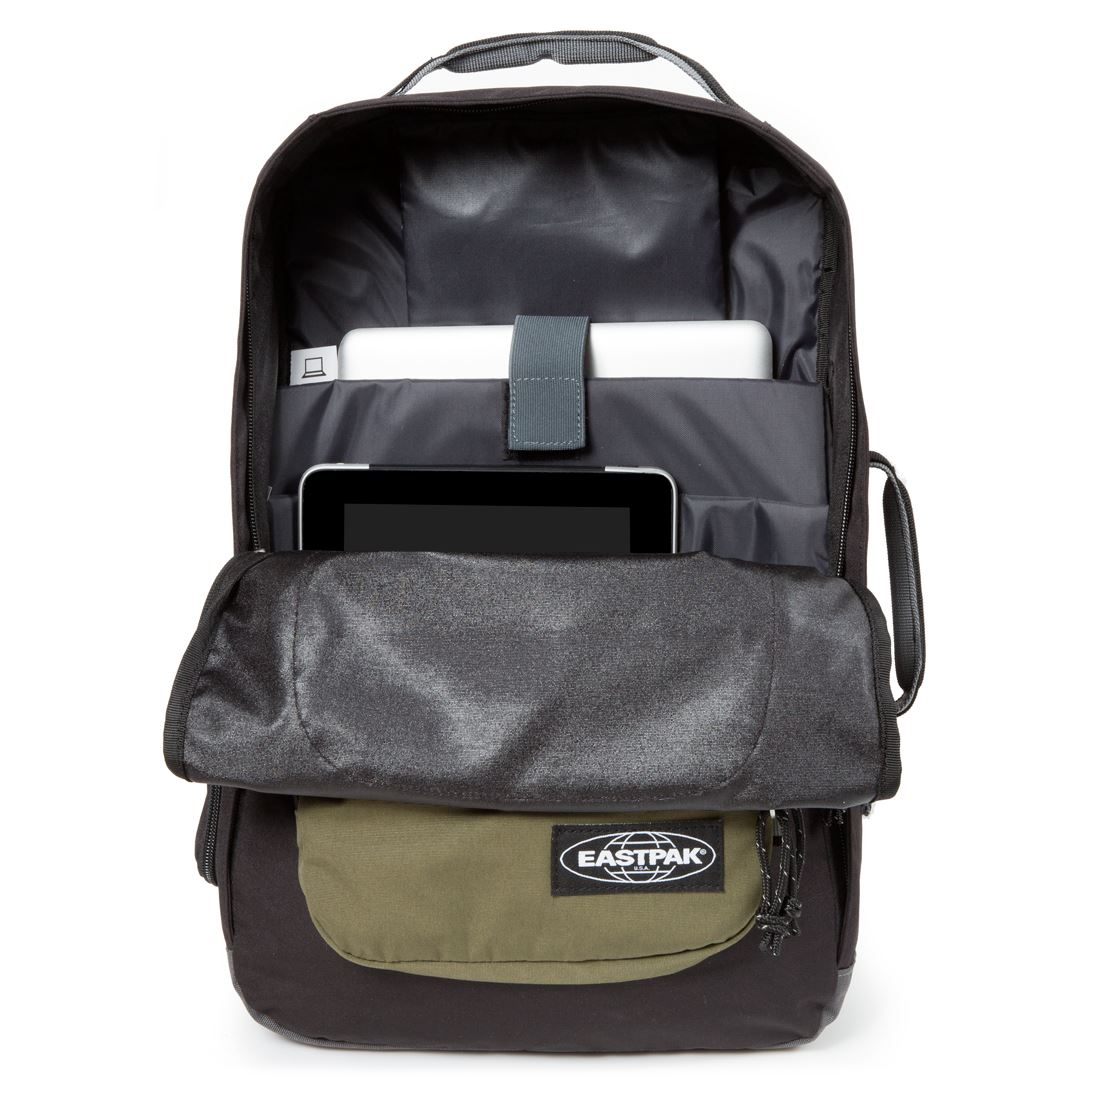 Eastpak Nola Backpack Tuck Away Straps   Briefcase with Laptop ... 7df2edb90d79